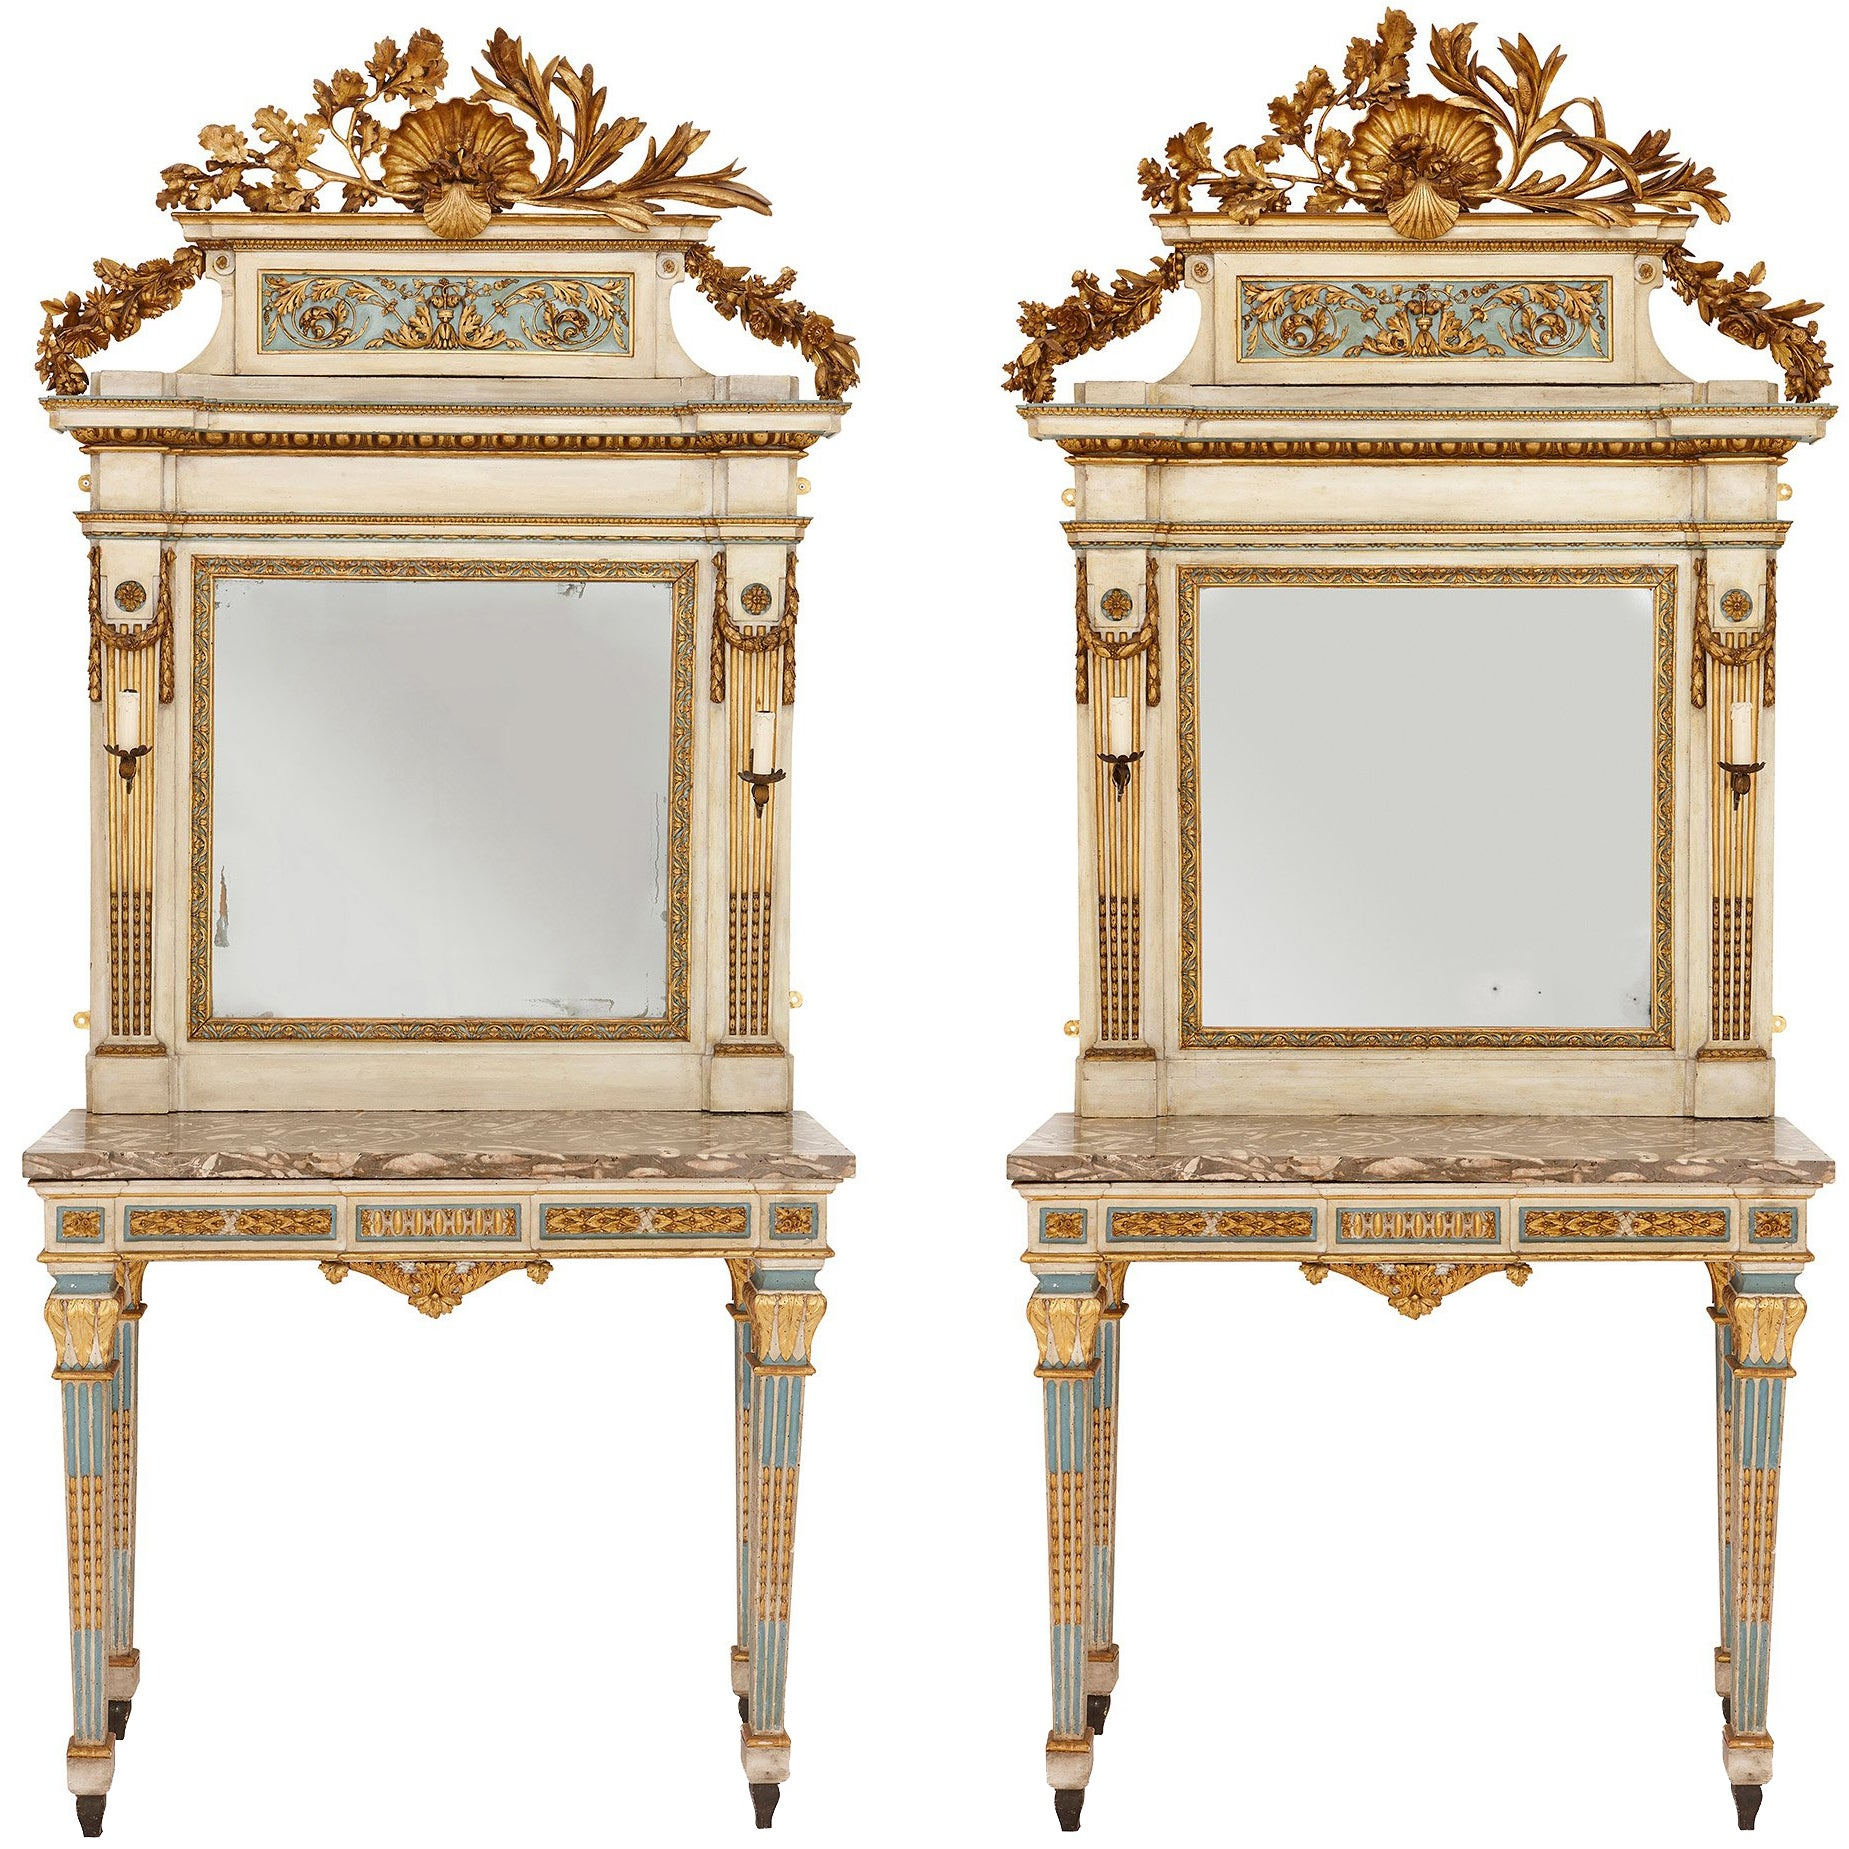 Pair of 18th Century Neoclassical Mirrored Console Tables